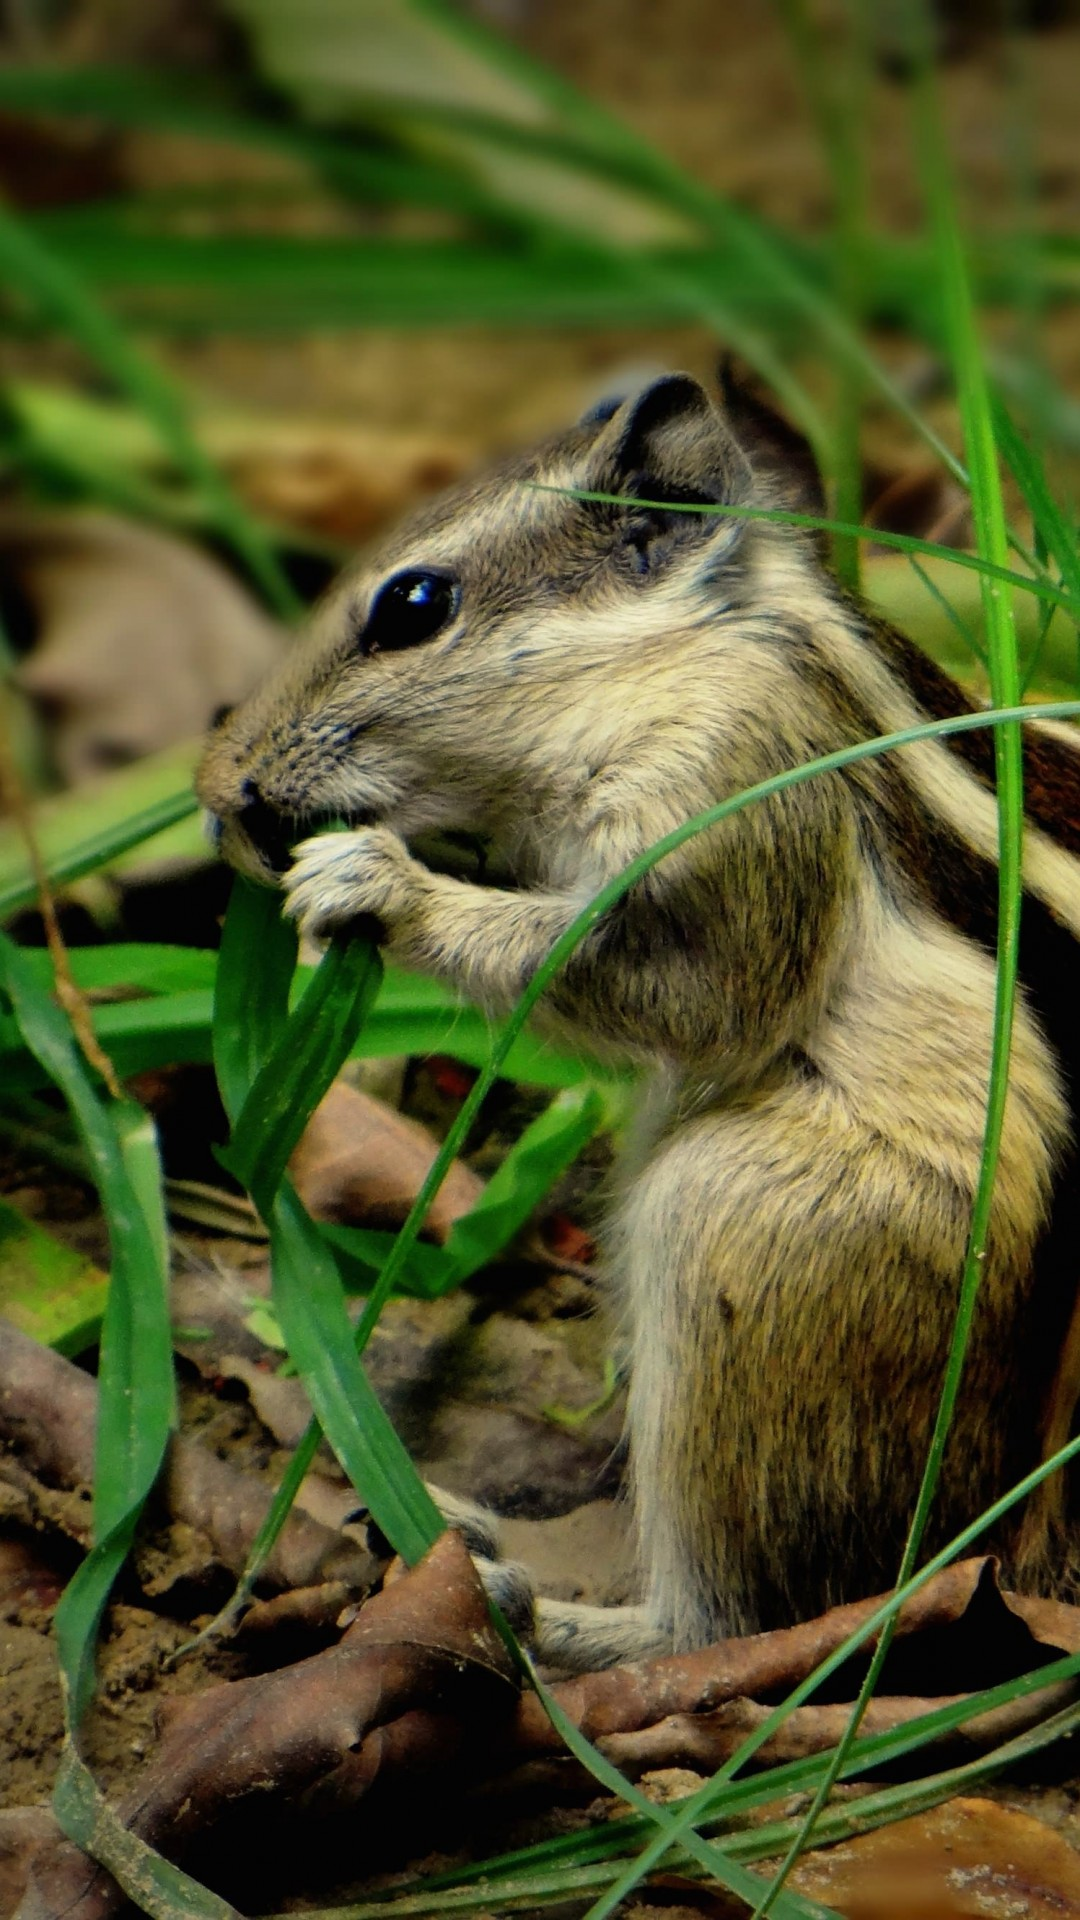 Chipmunk In The Grass Wallpaper for Motorola Moto X